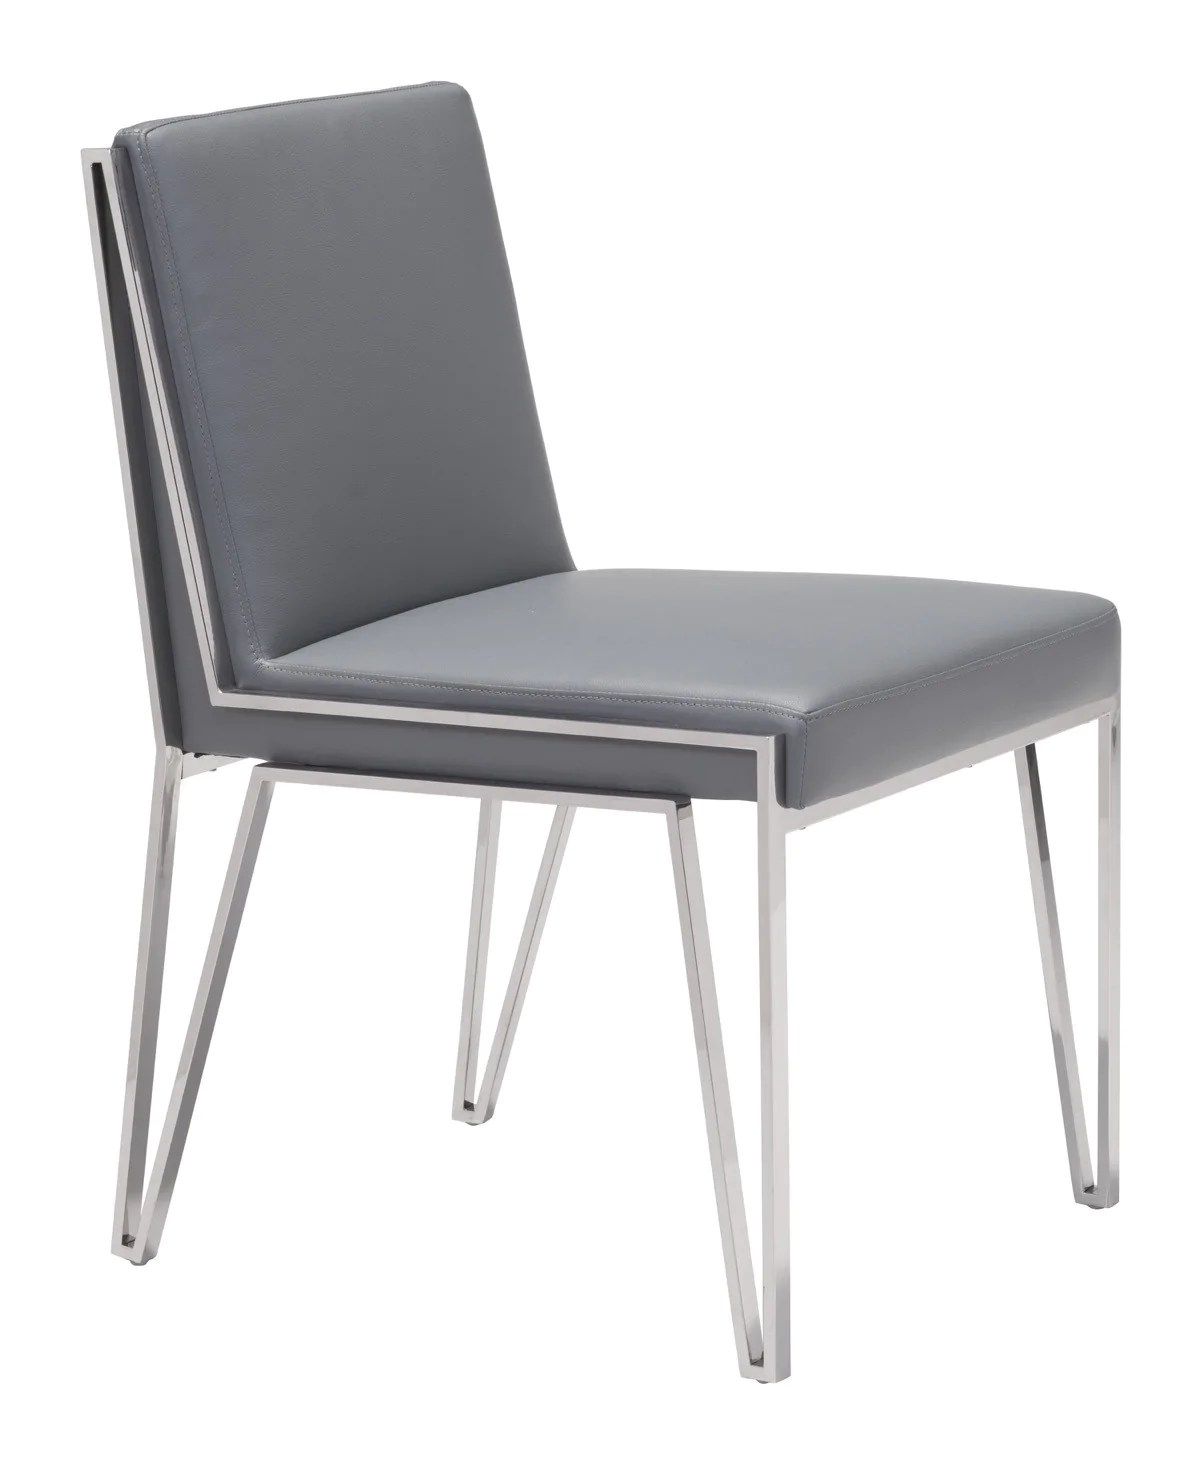 dining chairs with stainless steel legs cohesion gaming chair kylo in gray leatherette open set of 2